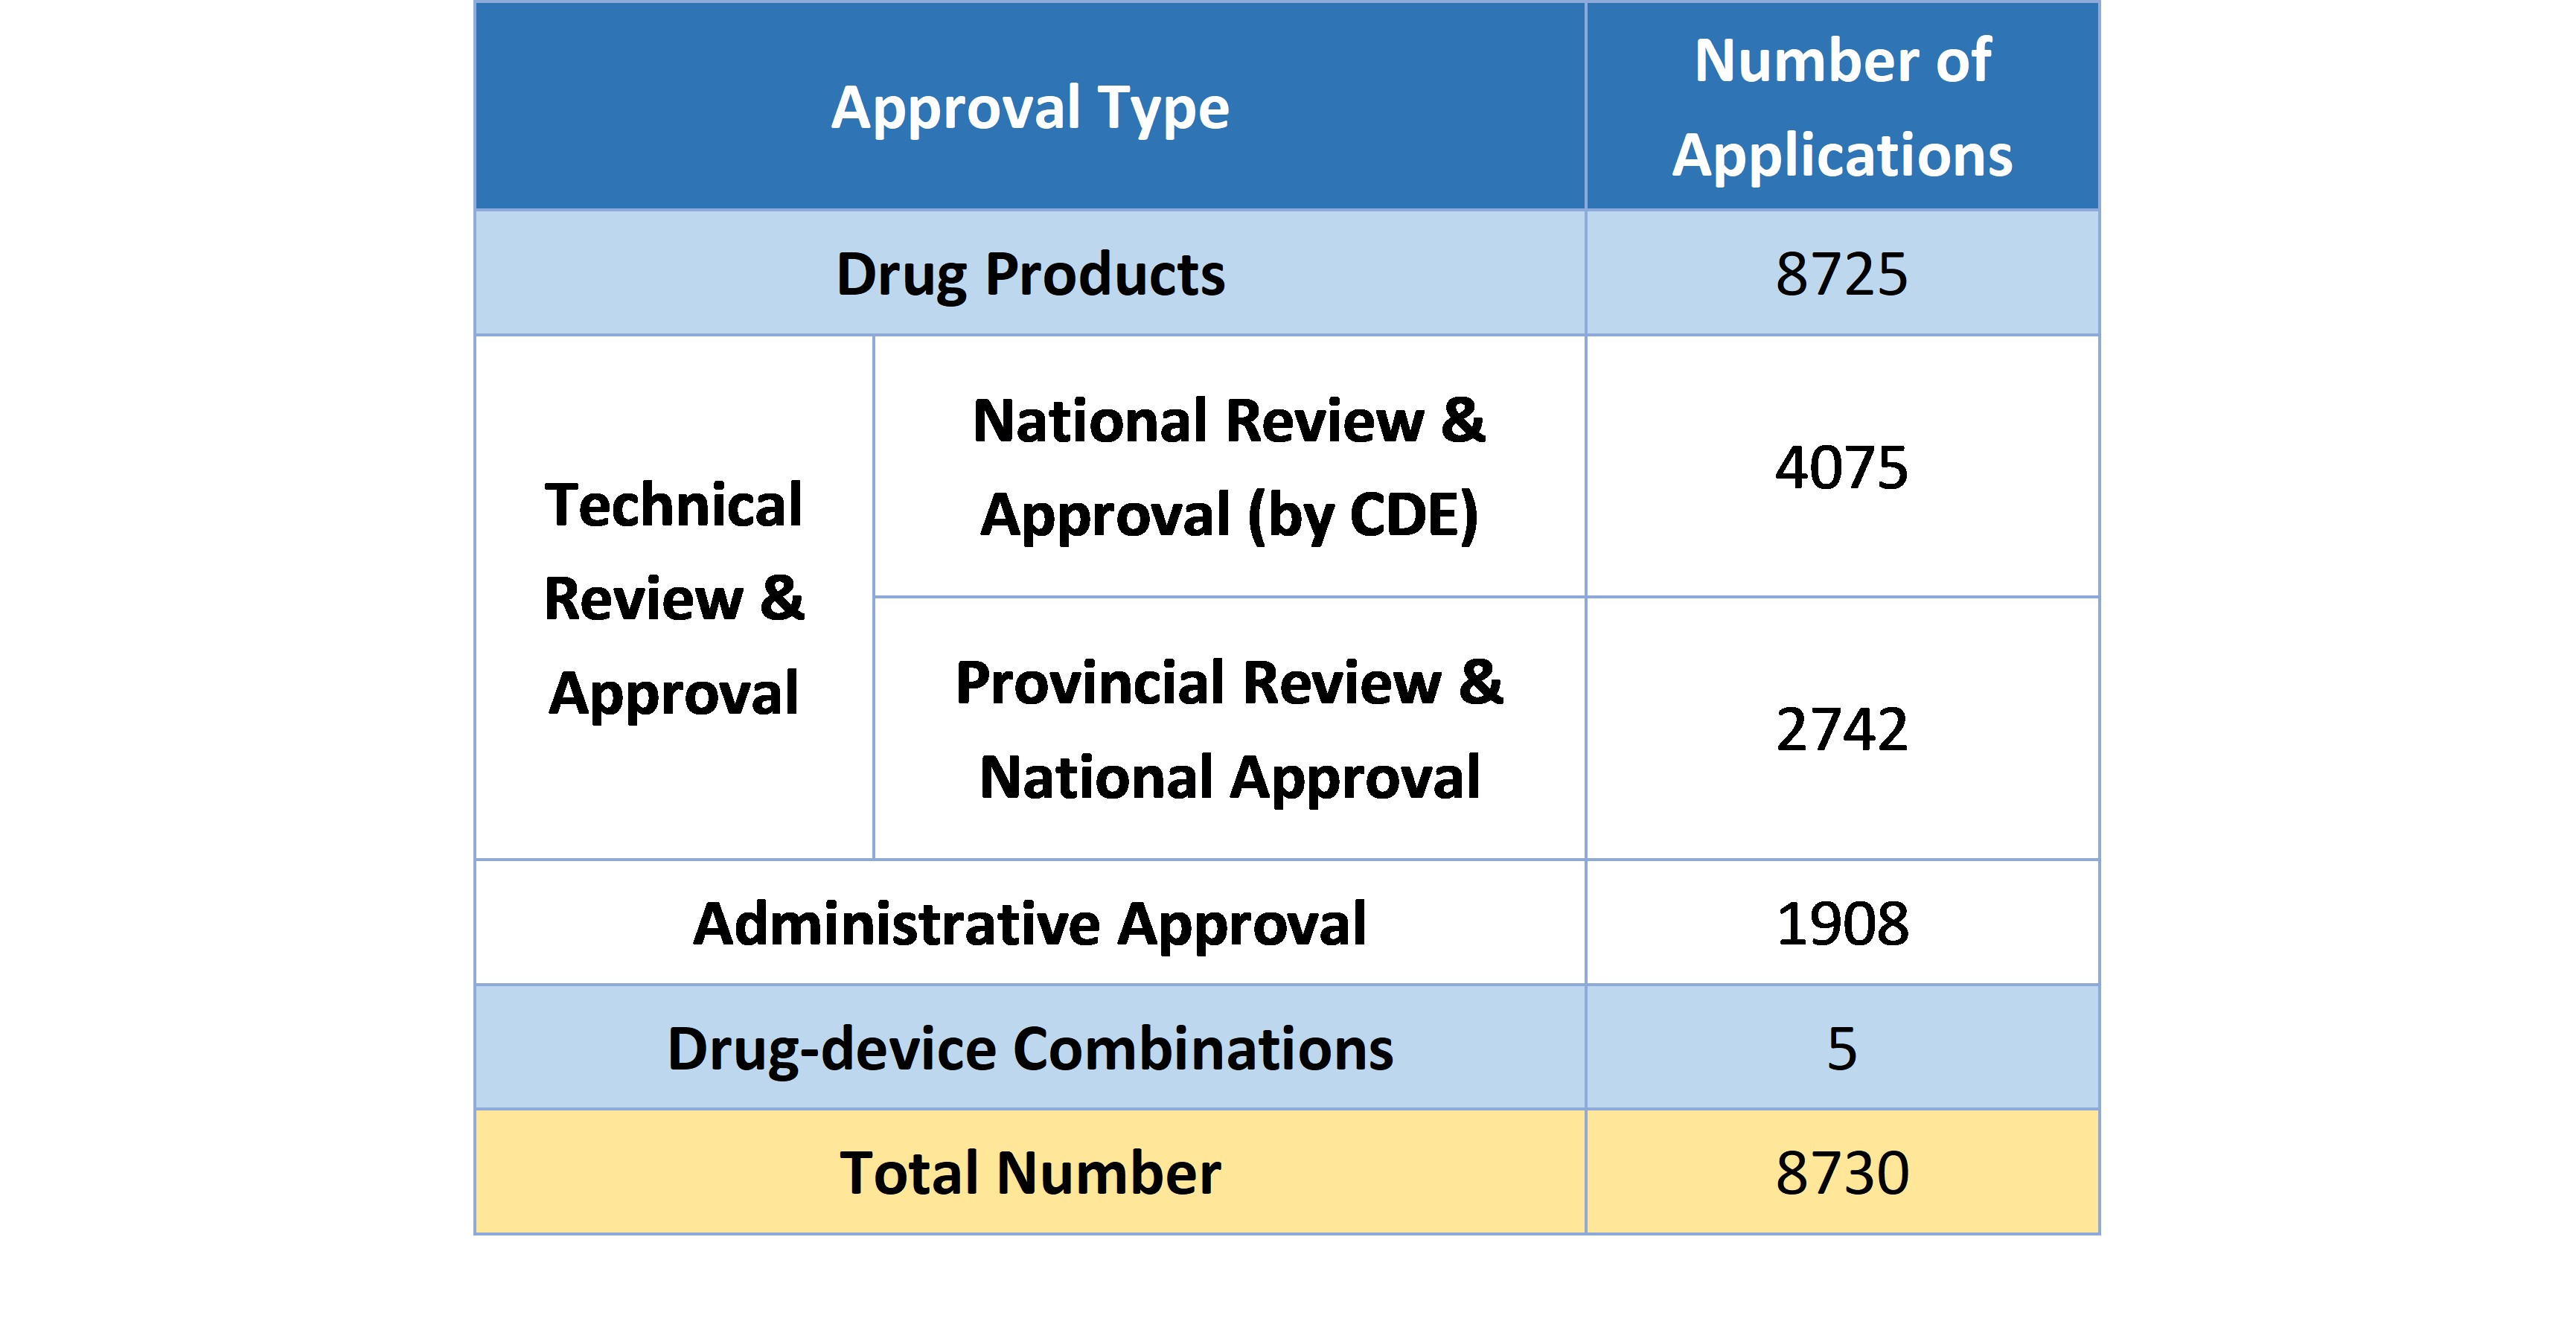 Table 1. Number of Applications Being Reviewed and Approved in 2019